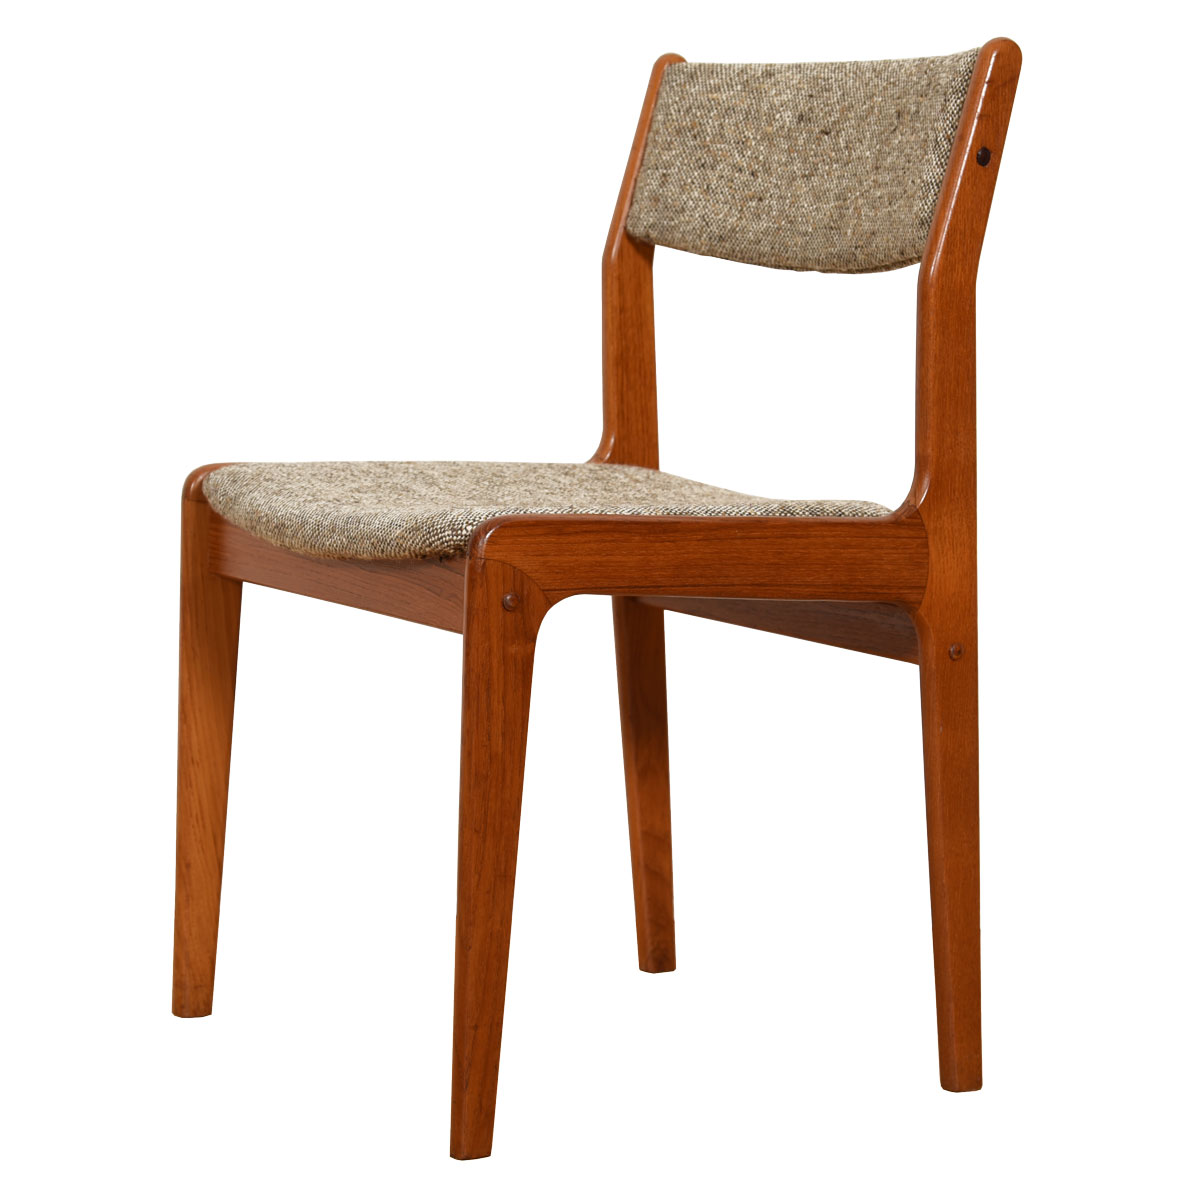 Single Danish Modern Teak Dining / Accent Chair